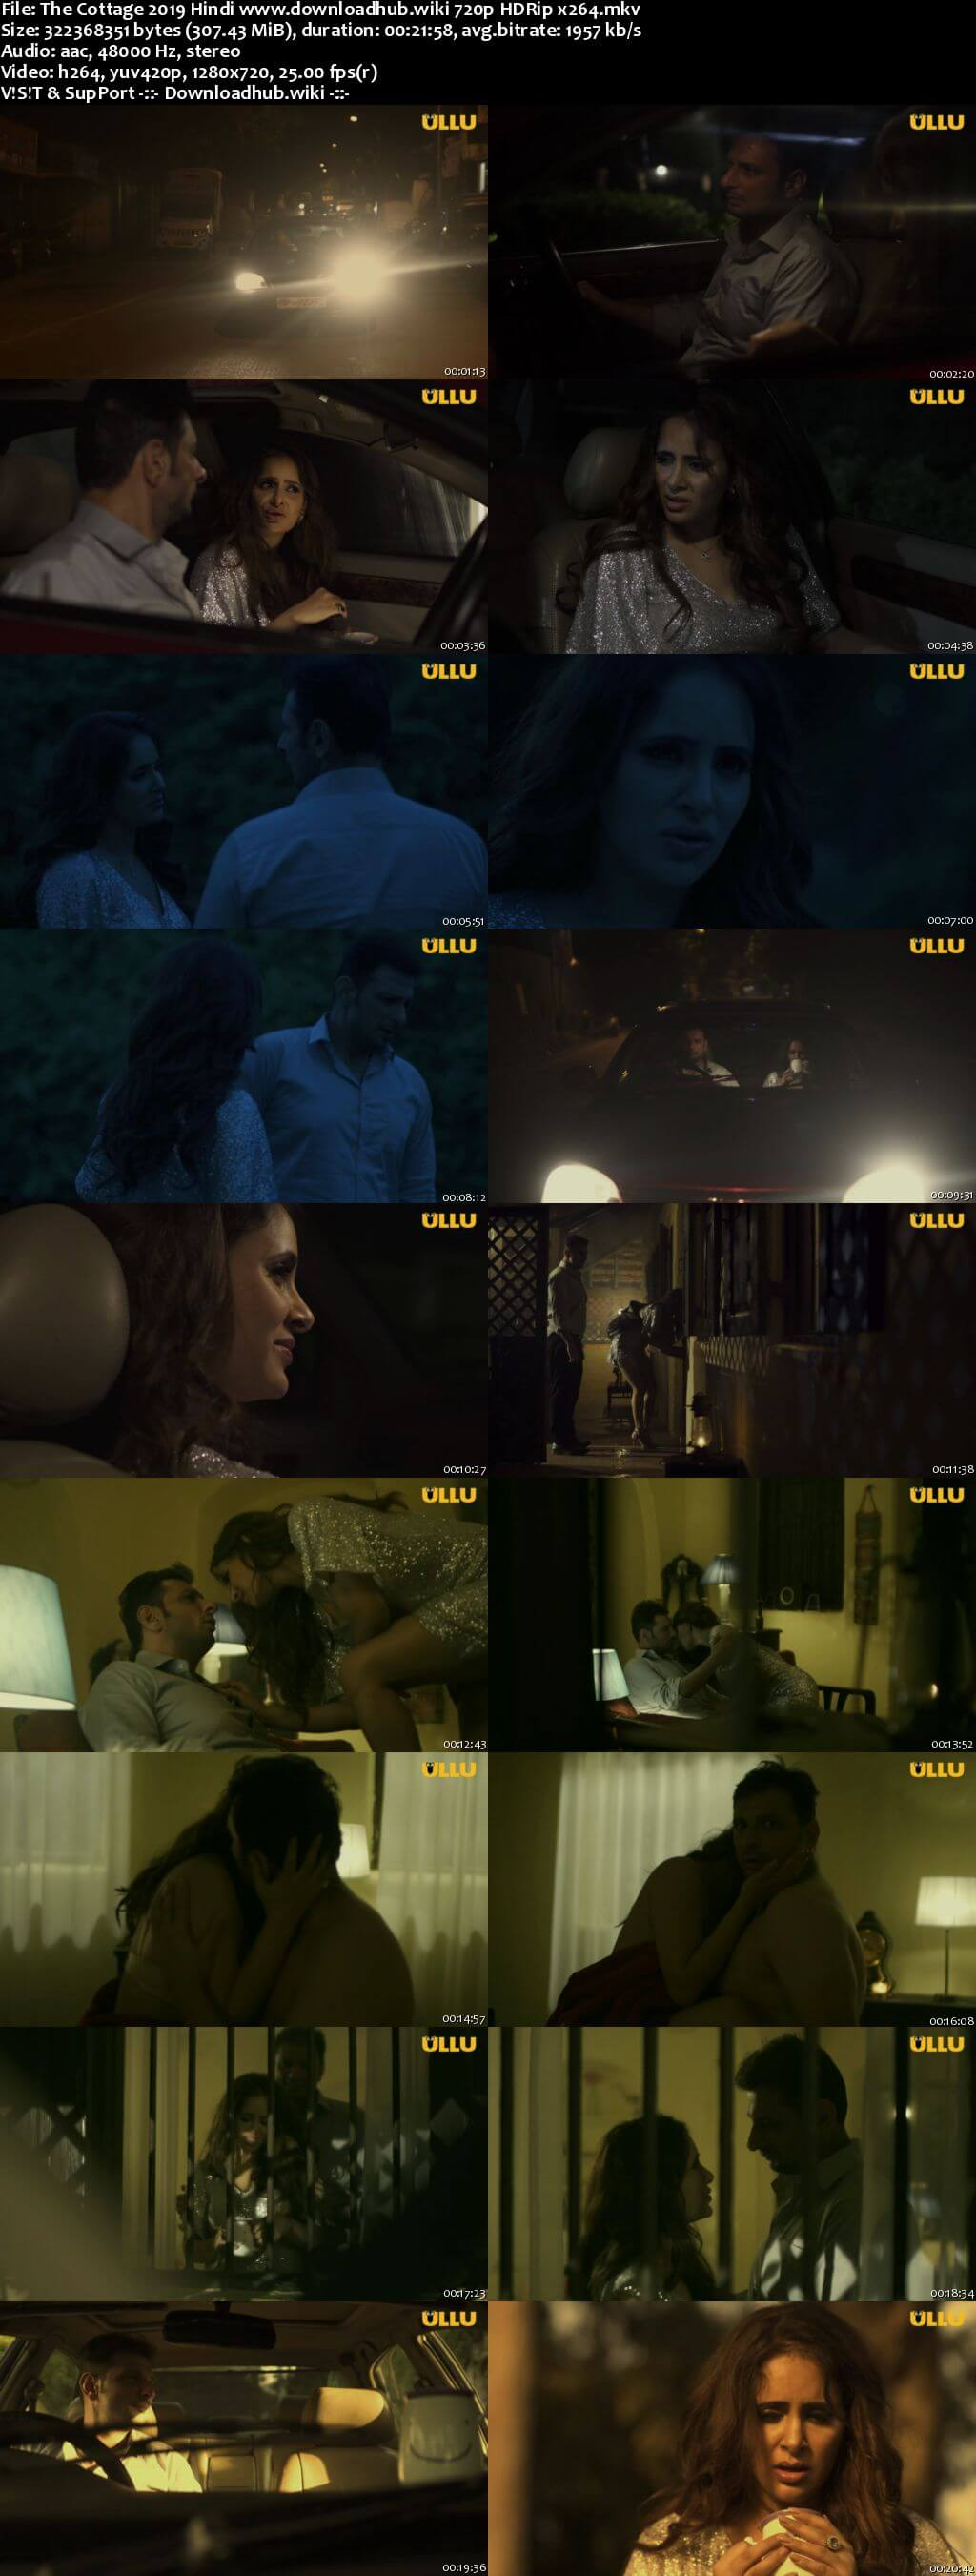 The Cottage 2019 Hindi 720p HDRip x264